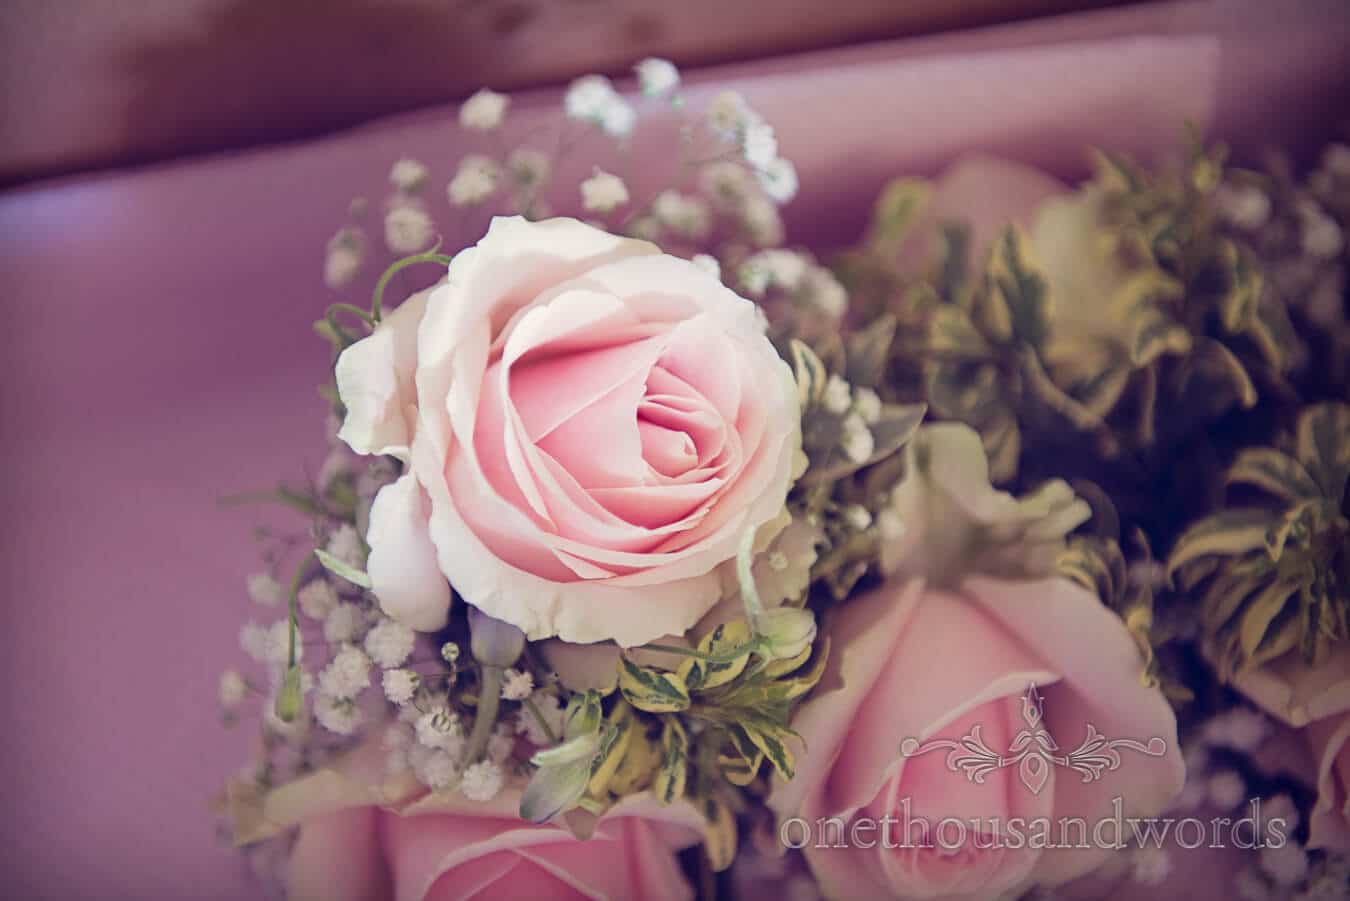 Countryside Wedding fowers - pink roses with gypsophila